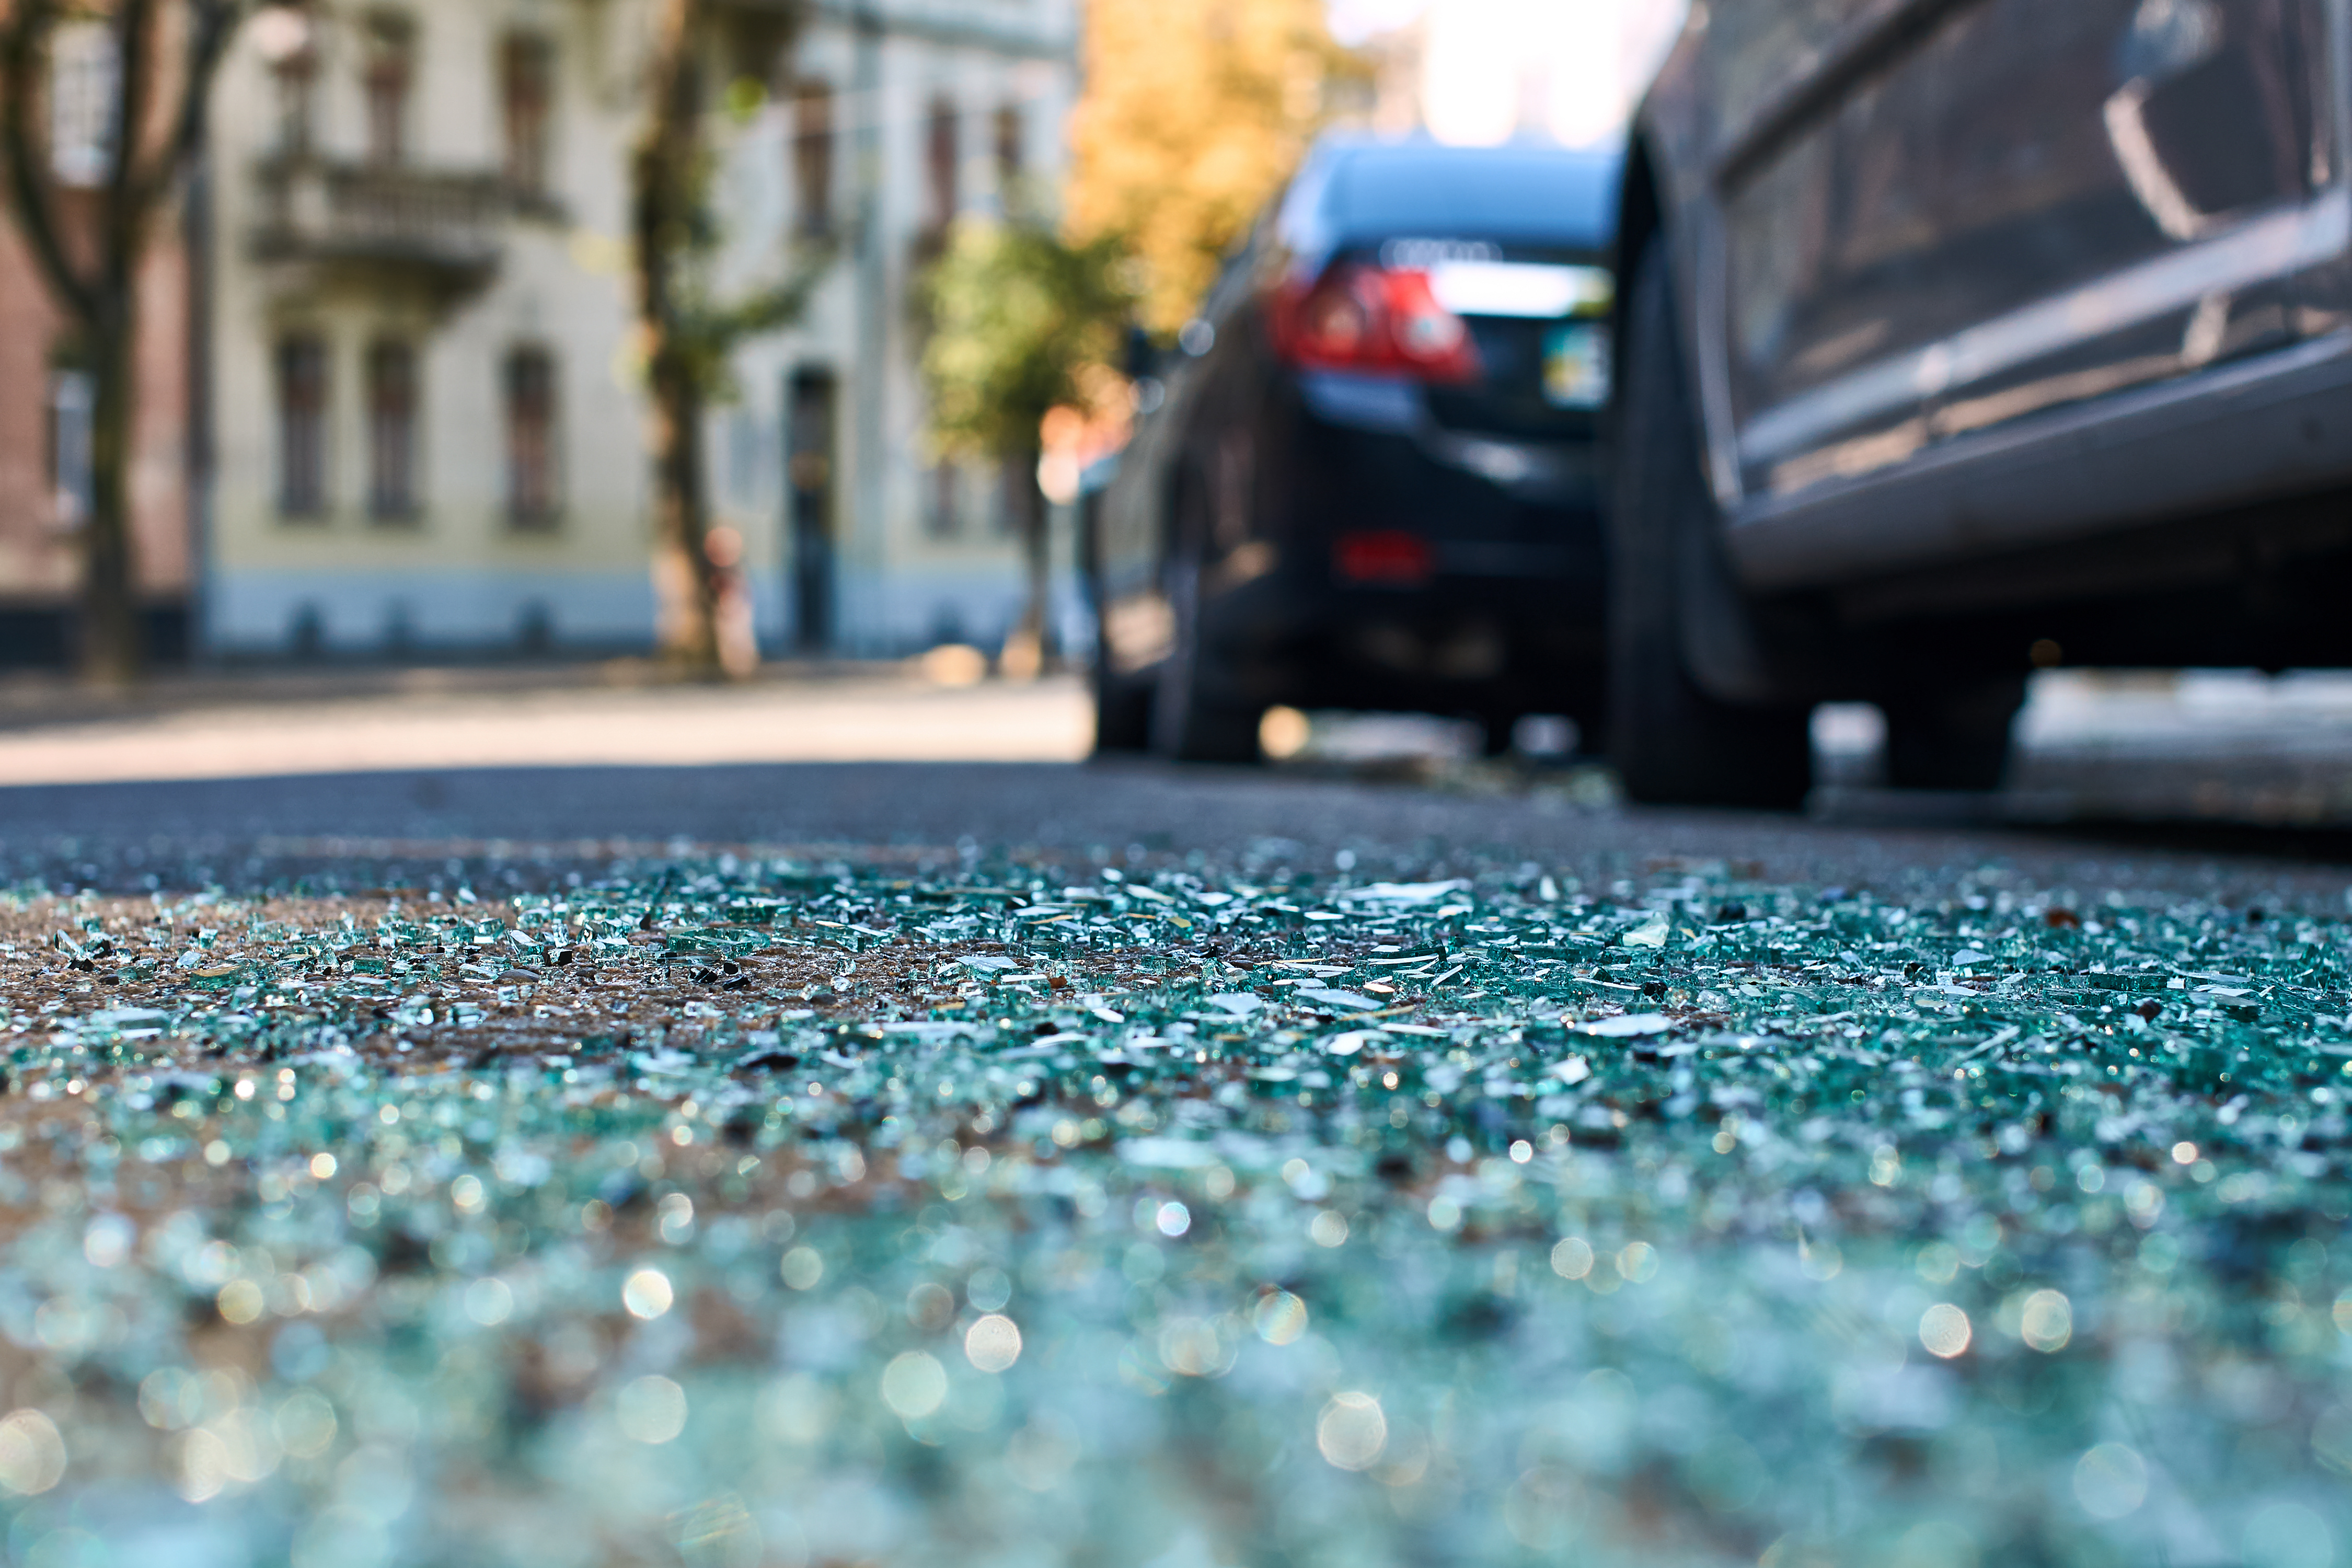 A Palos Park police officer was injured Nov. 11, 2019, after his vehicle was rear-ended.